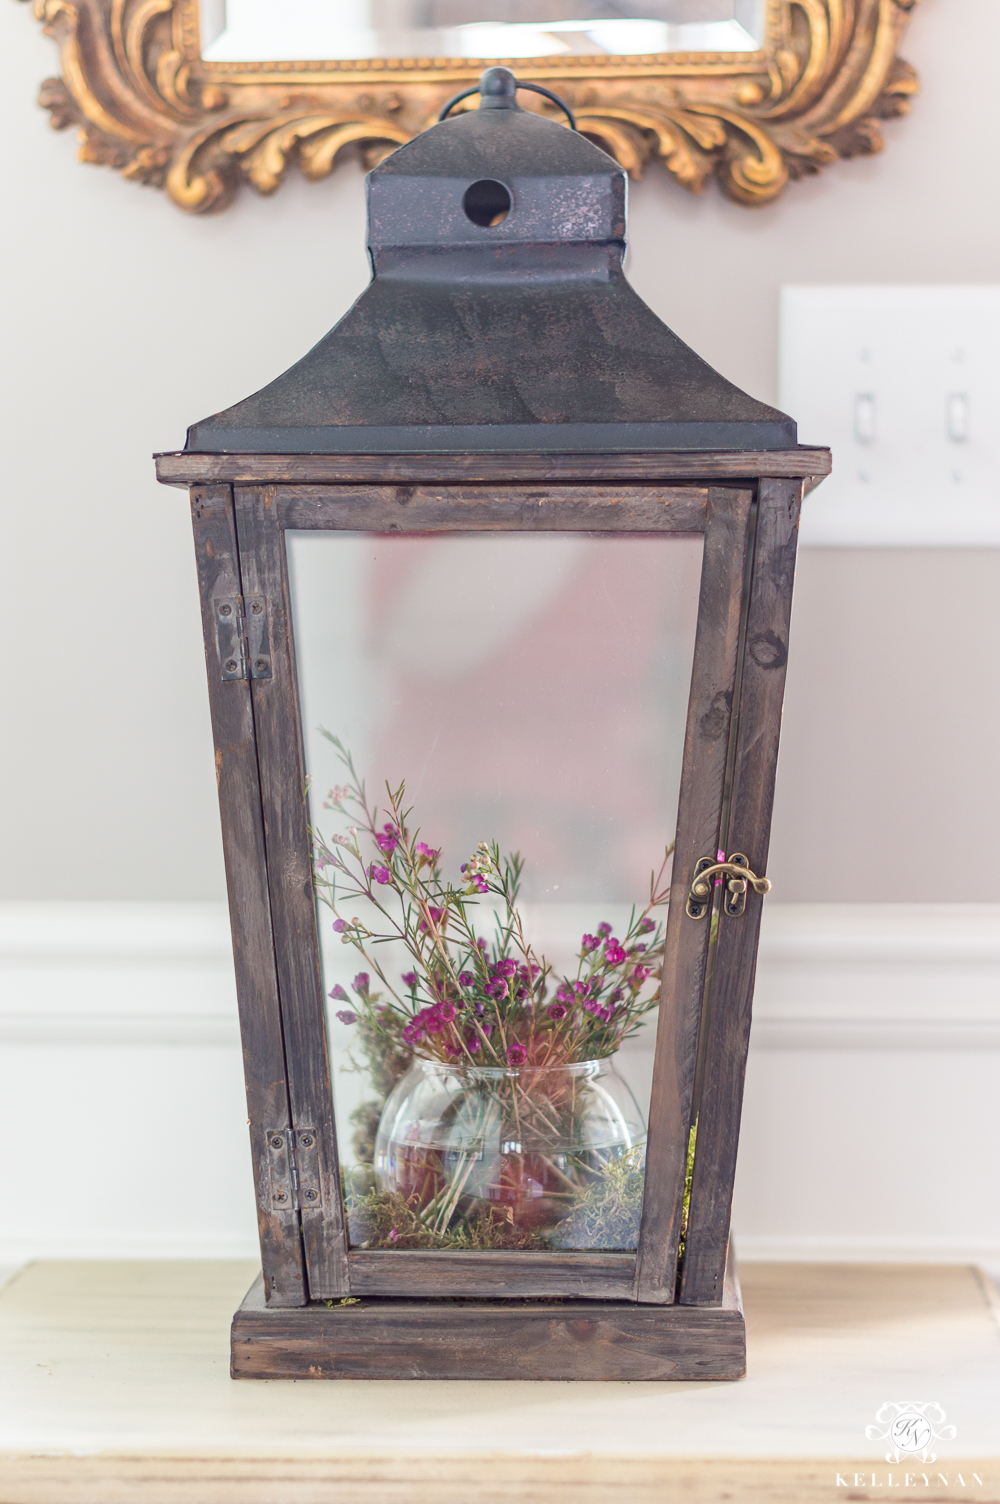 Rustic Lantern with Flowers Inside- Lantern Styling Ideas